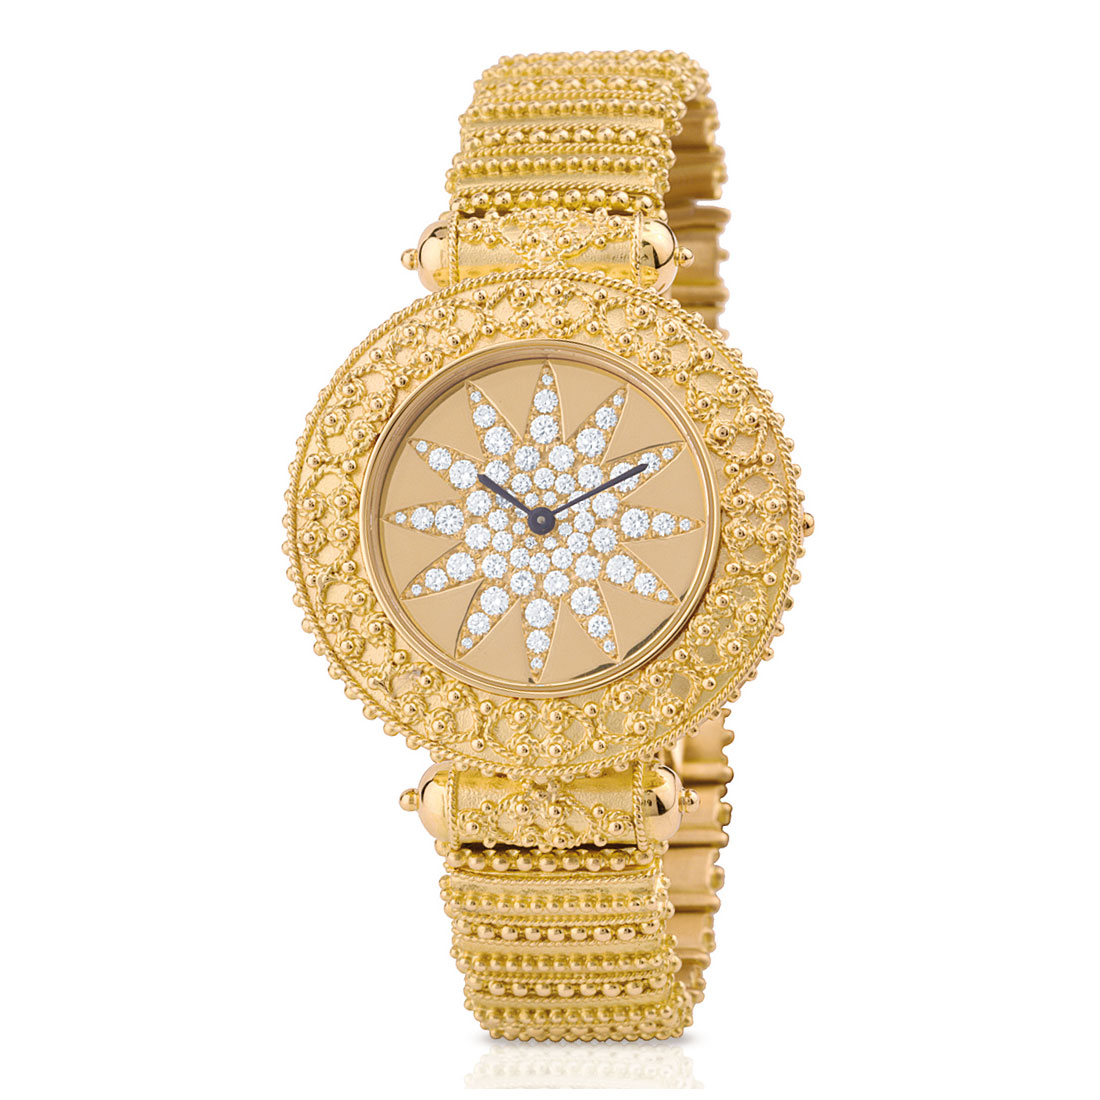 Matthia's & Claire Etrusca Gold Watch